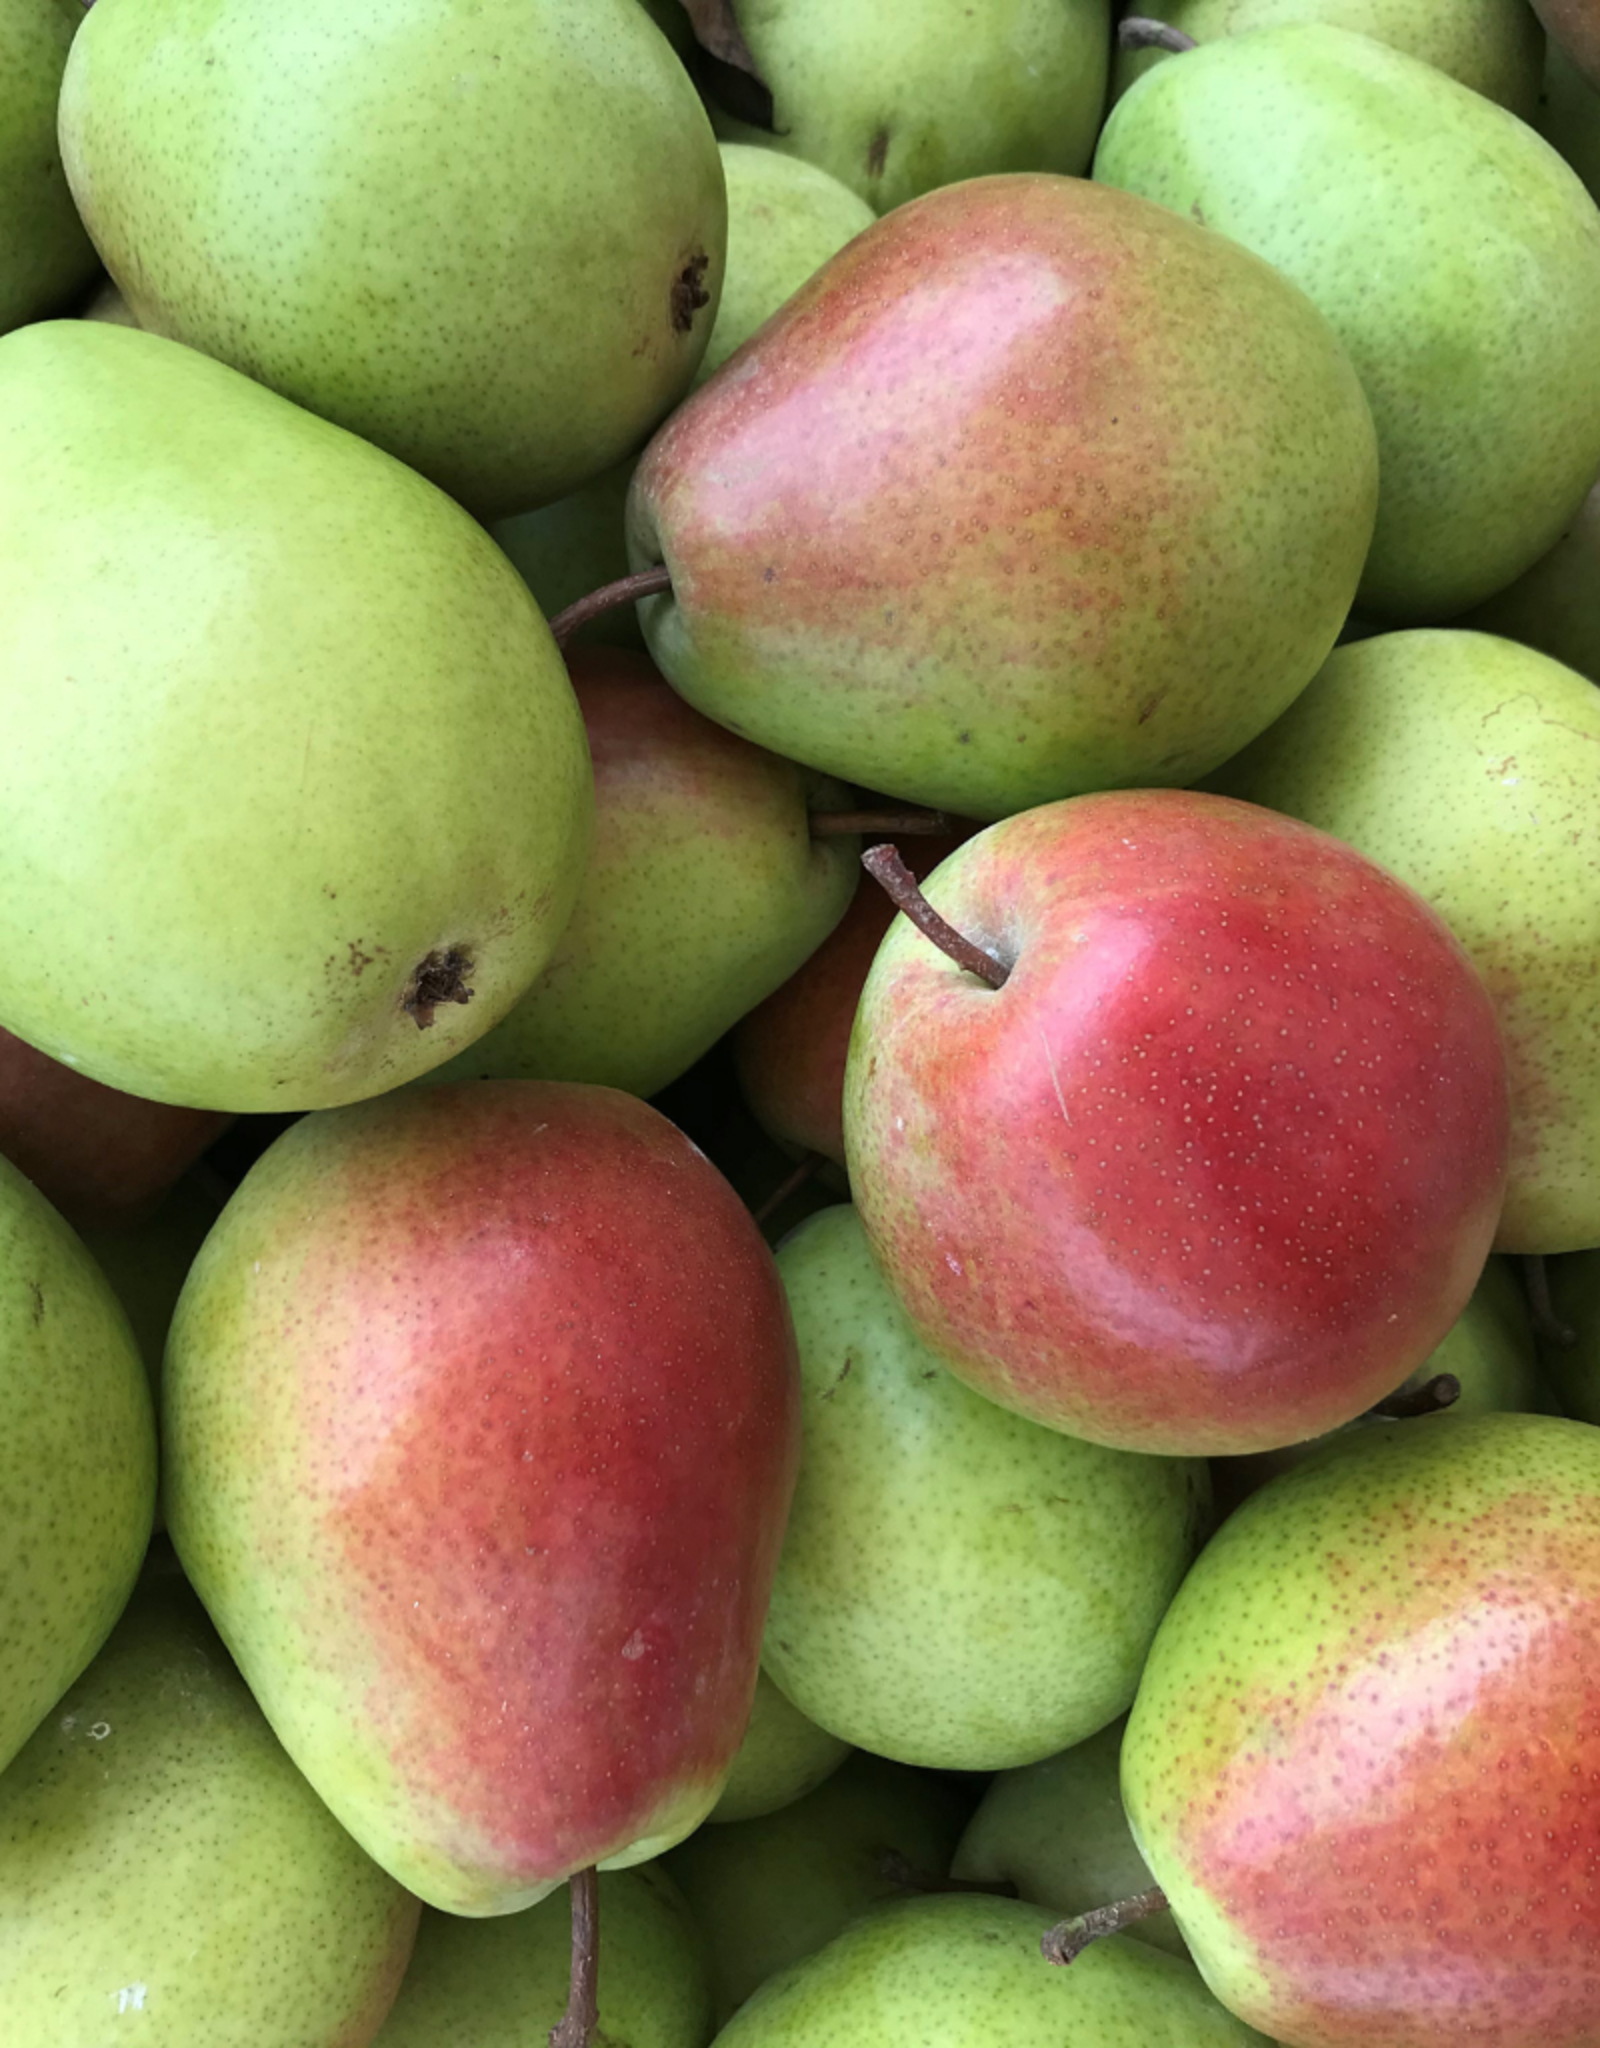 Campbell's Orchards Pears